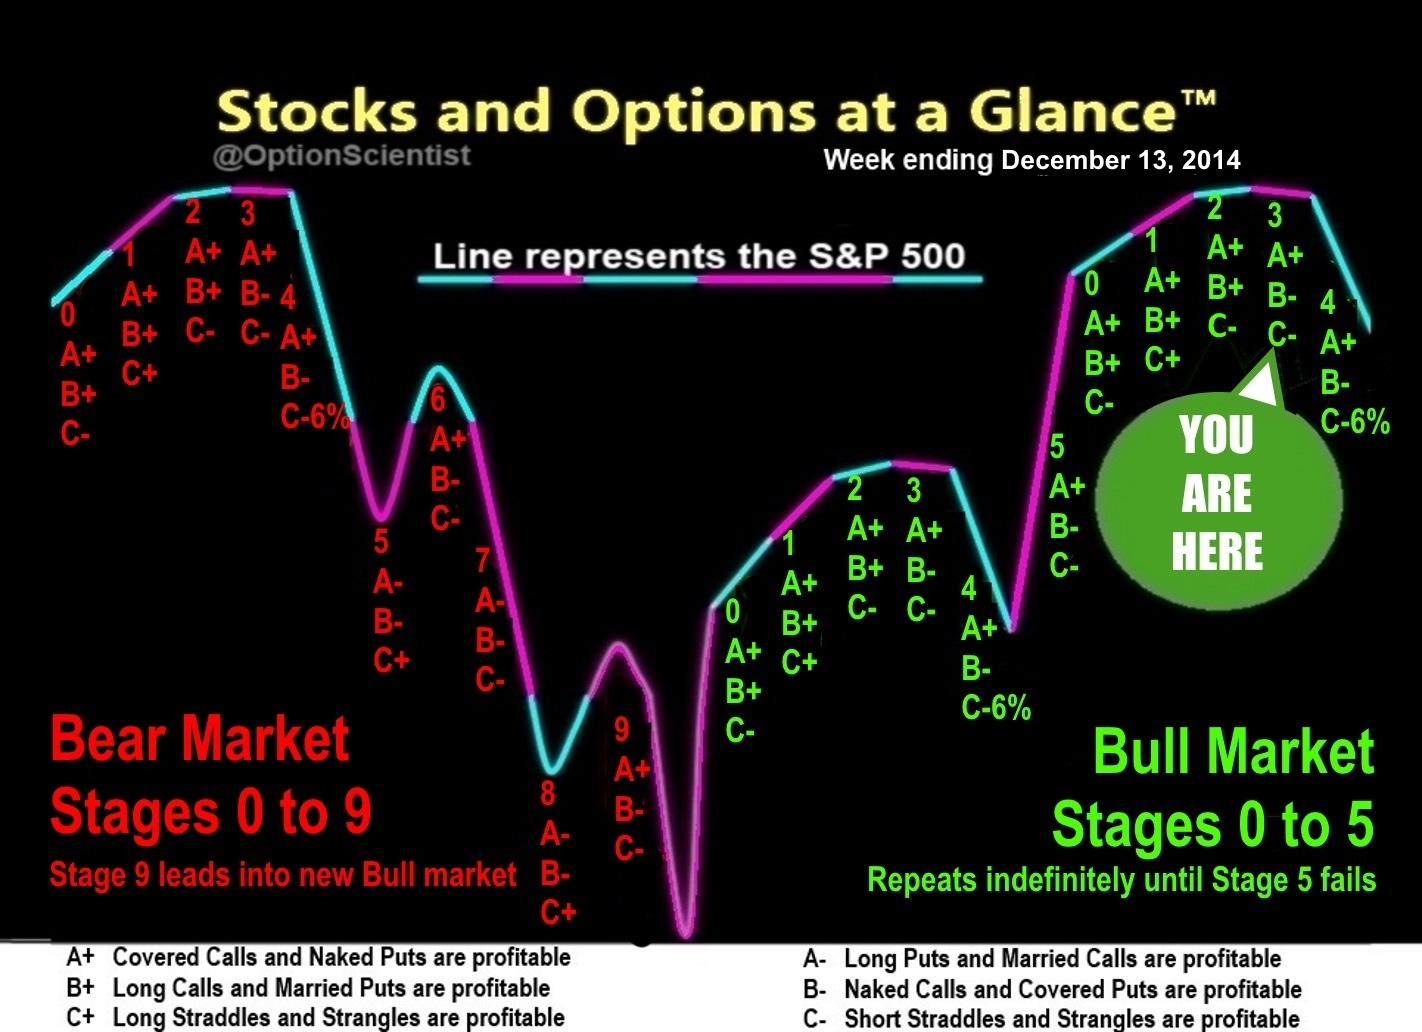 Stock option trading costs